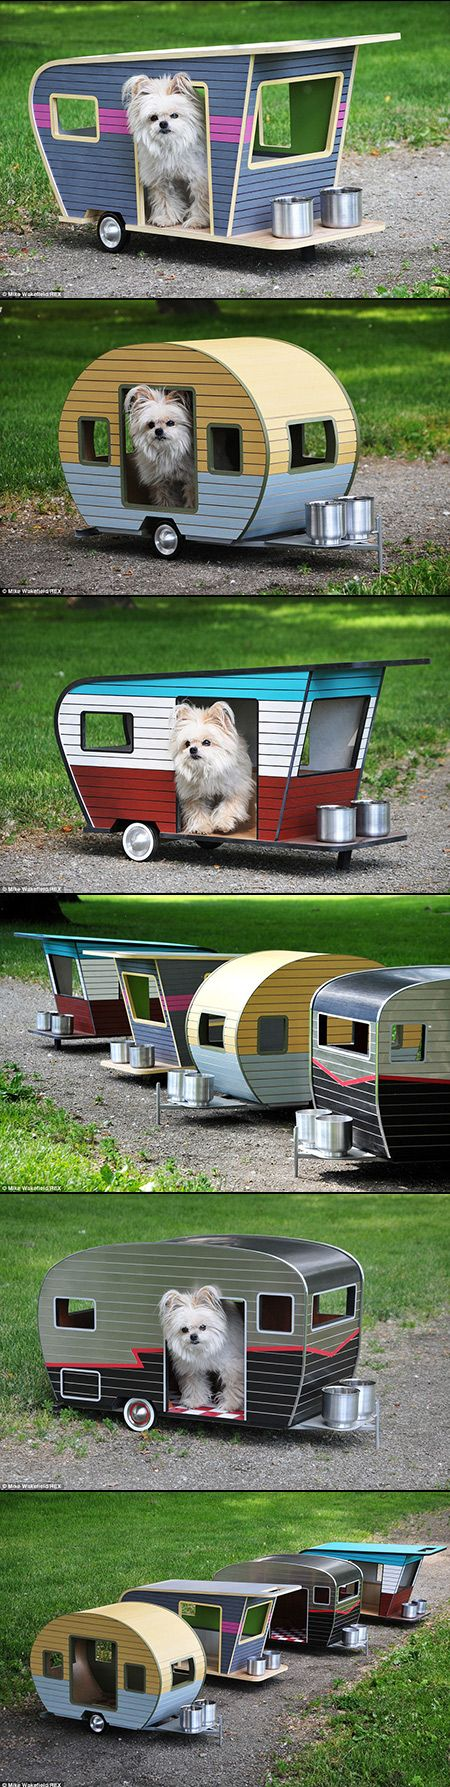 Pet Camper for Dogs Looks Like a Miniature Caravan, Complete with License Plate - TechEBlog